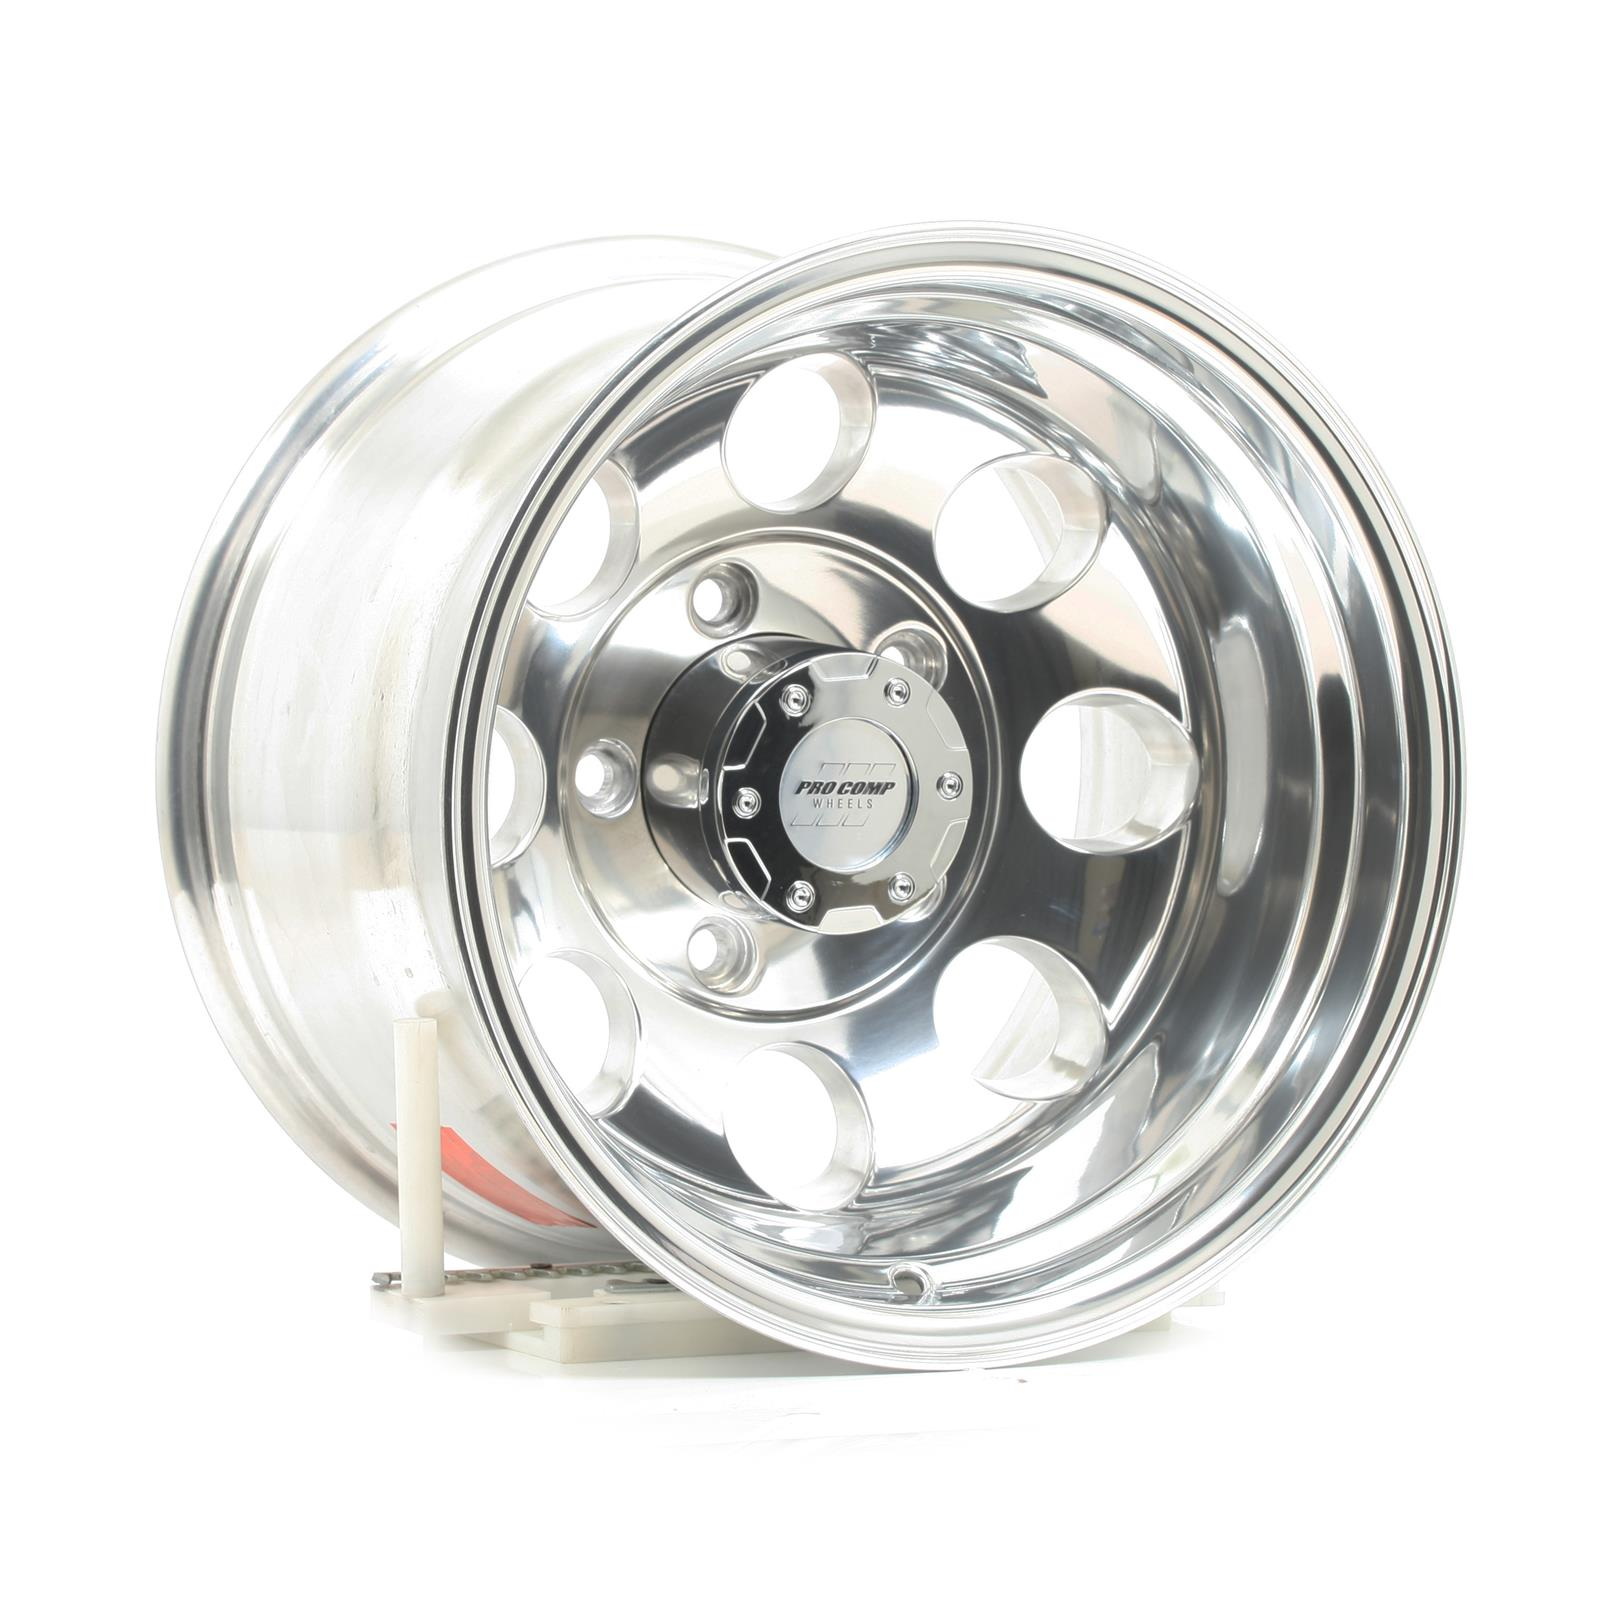 Pro Comp Alloys Series 69 Wheel with Polished Finish 16x10//8x170mm